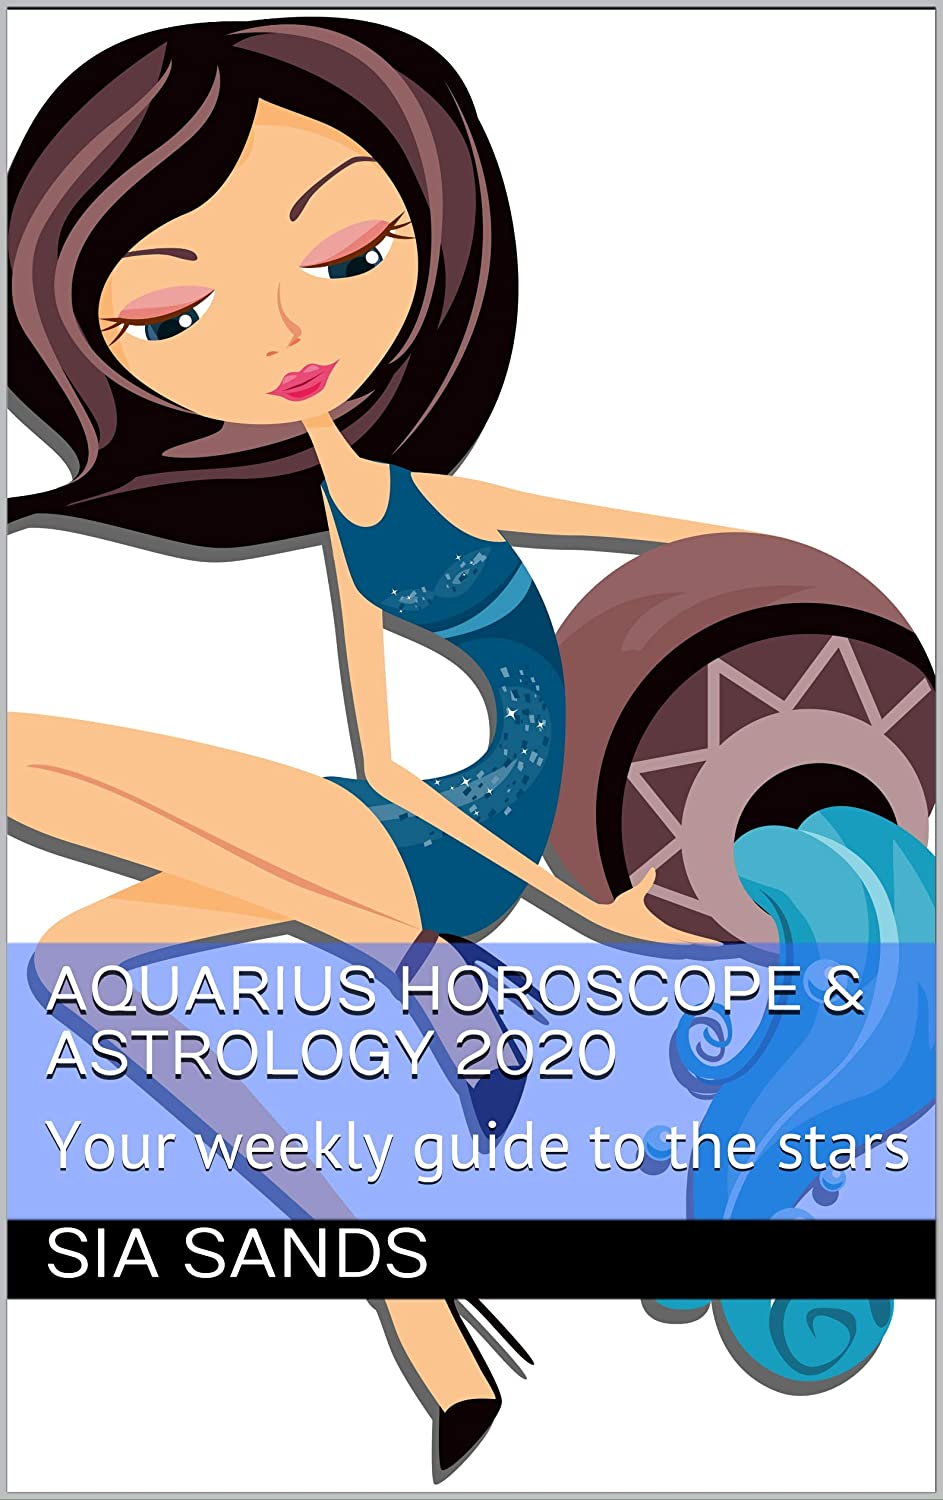 Aquarius Horoscope & Astrology 2020: Your weekly guide to